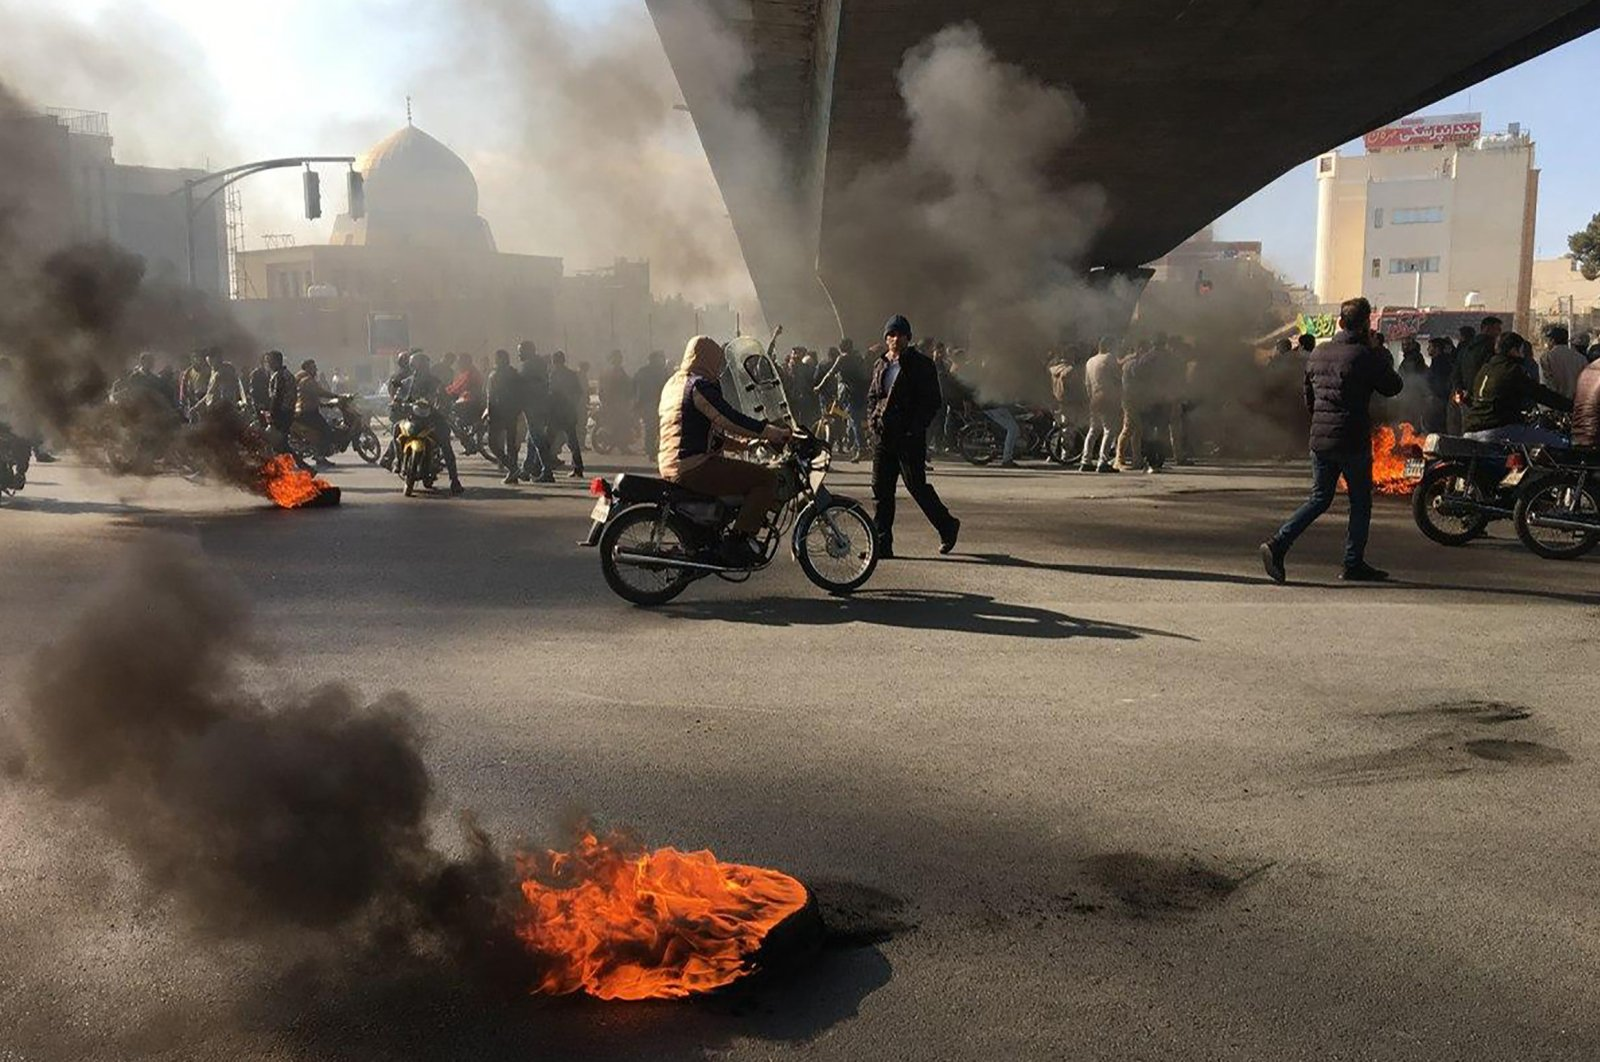 Iranian protesters rally amid burning tires during a demonstration against an increase in gasoline prices in the central city of Isfahan, Iran, Nov. 16, 2019. (AFP Photo)